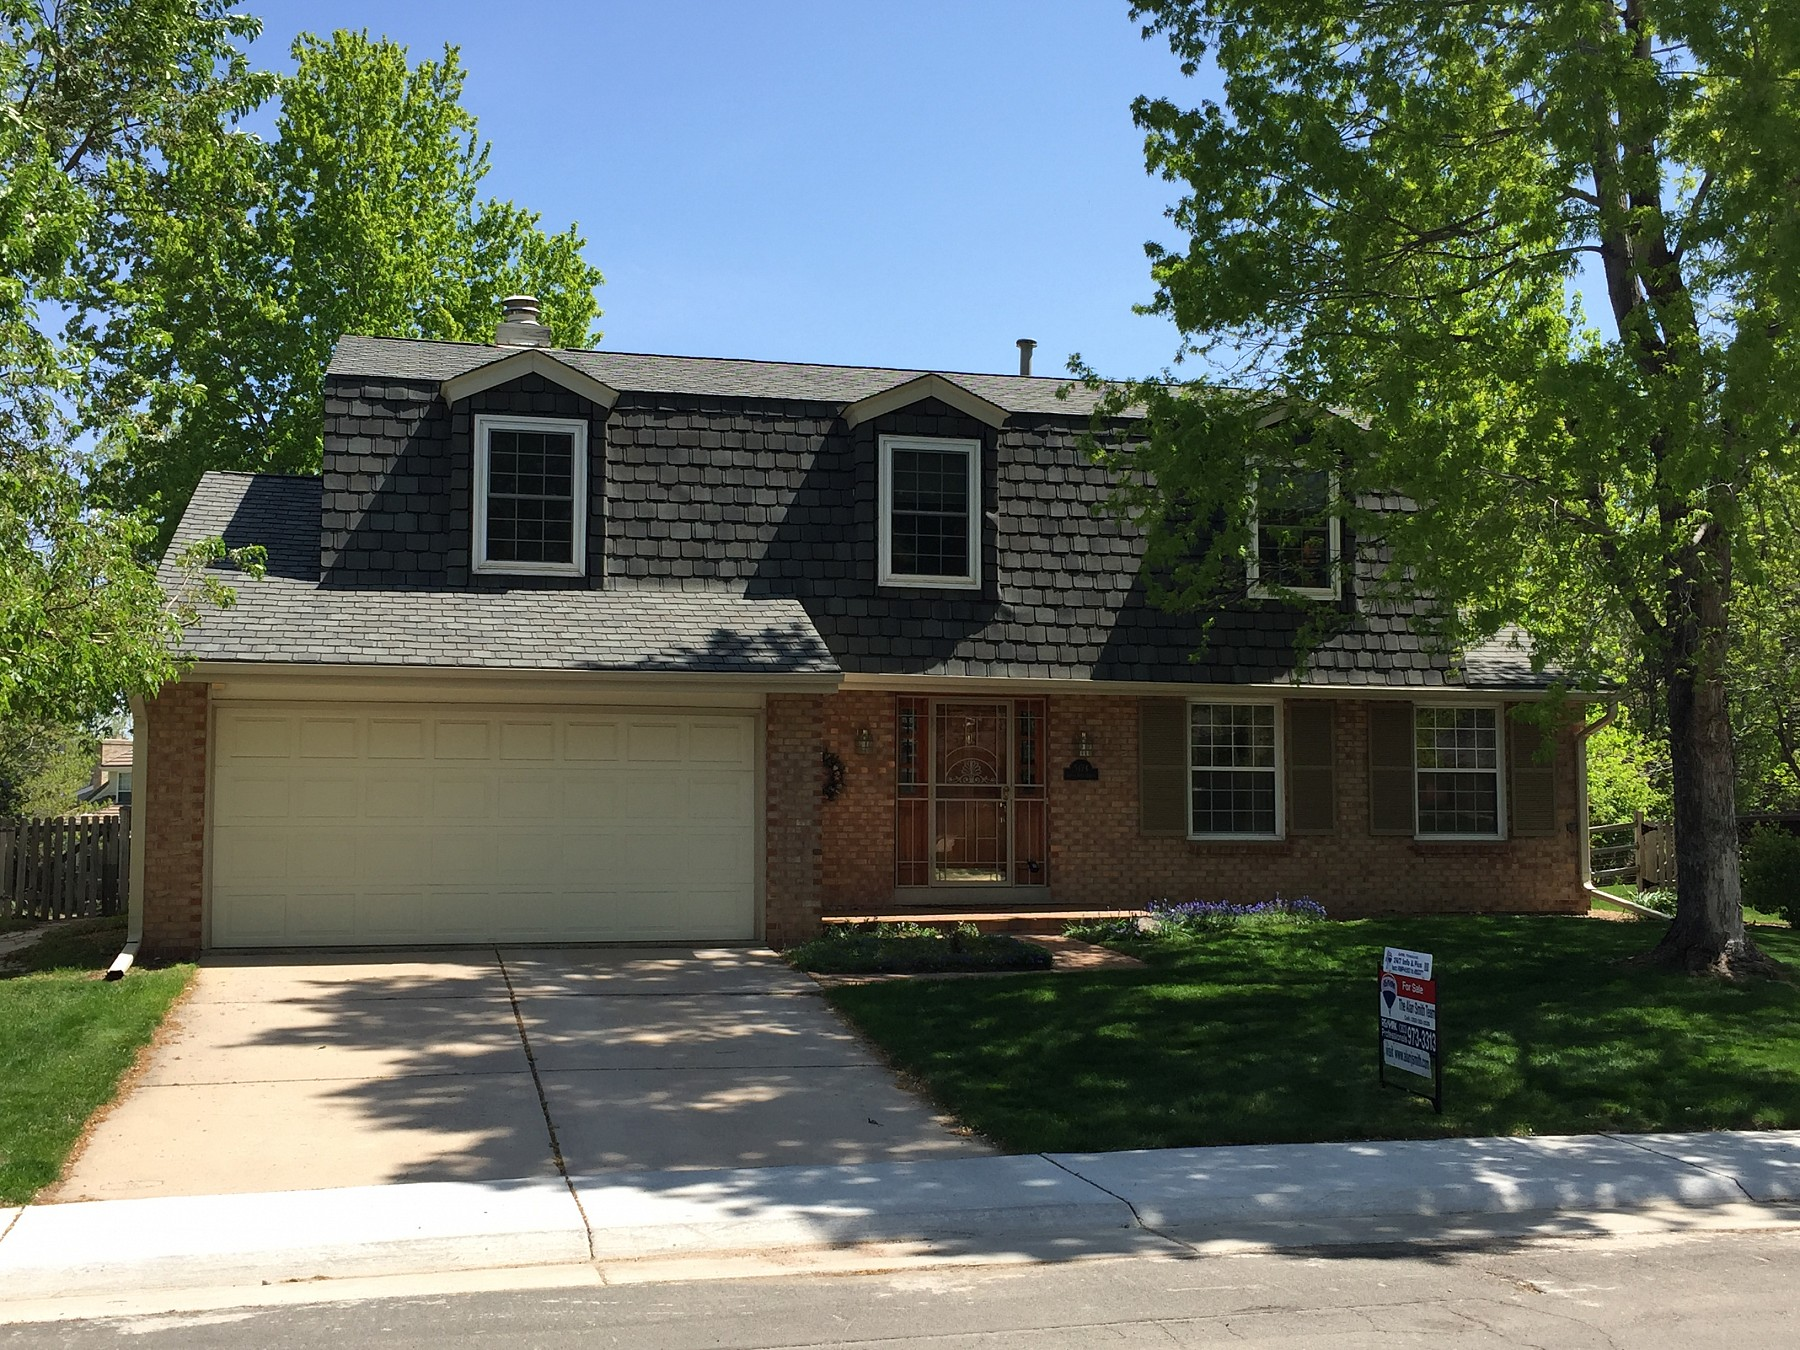 5174 South Hoyt Street, Littleton, CO 80123